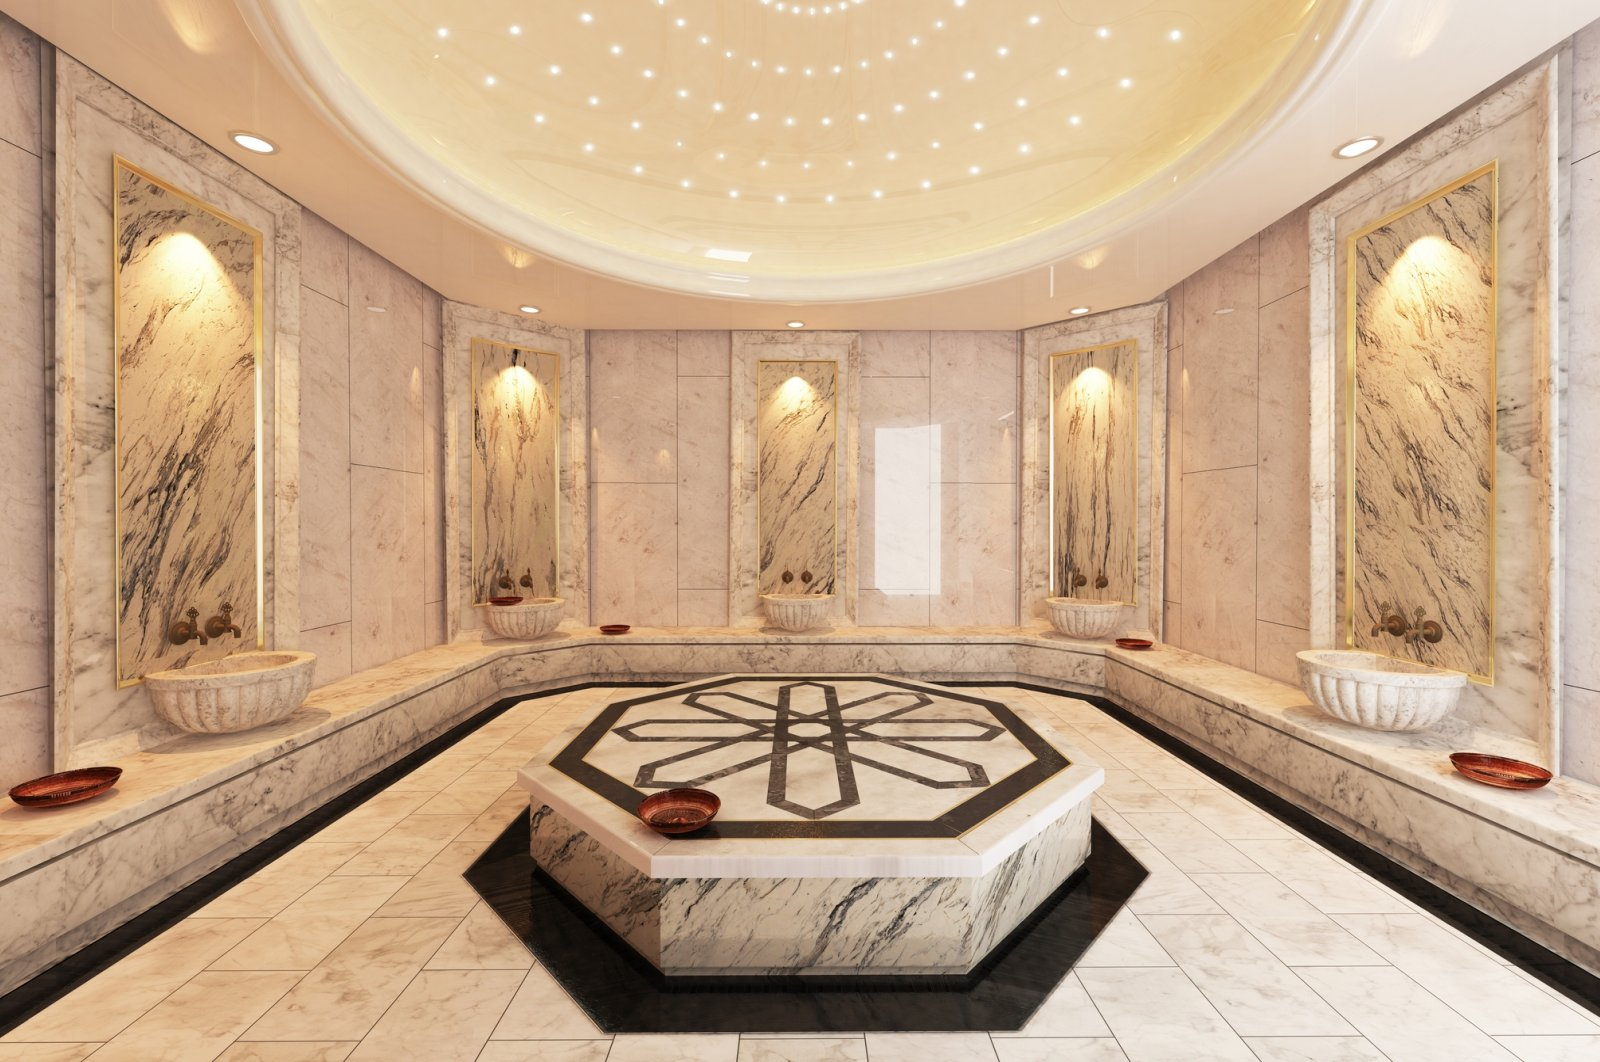 Turkish baths and spas have been a detox practice that has been around for centuries. (iStock Photo)